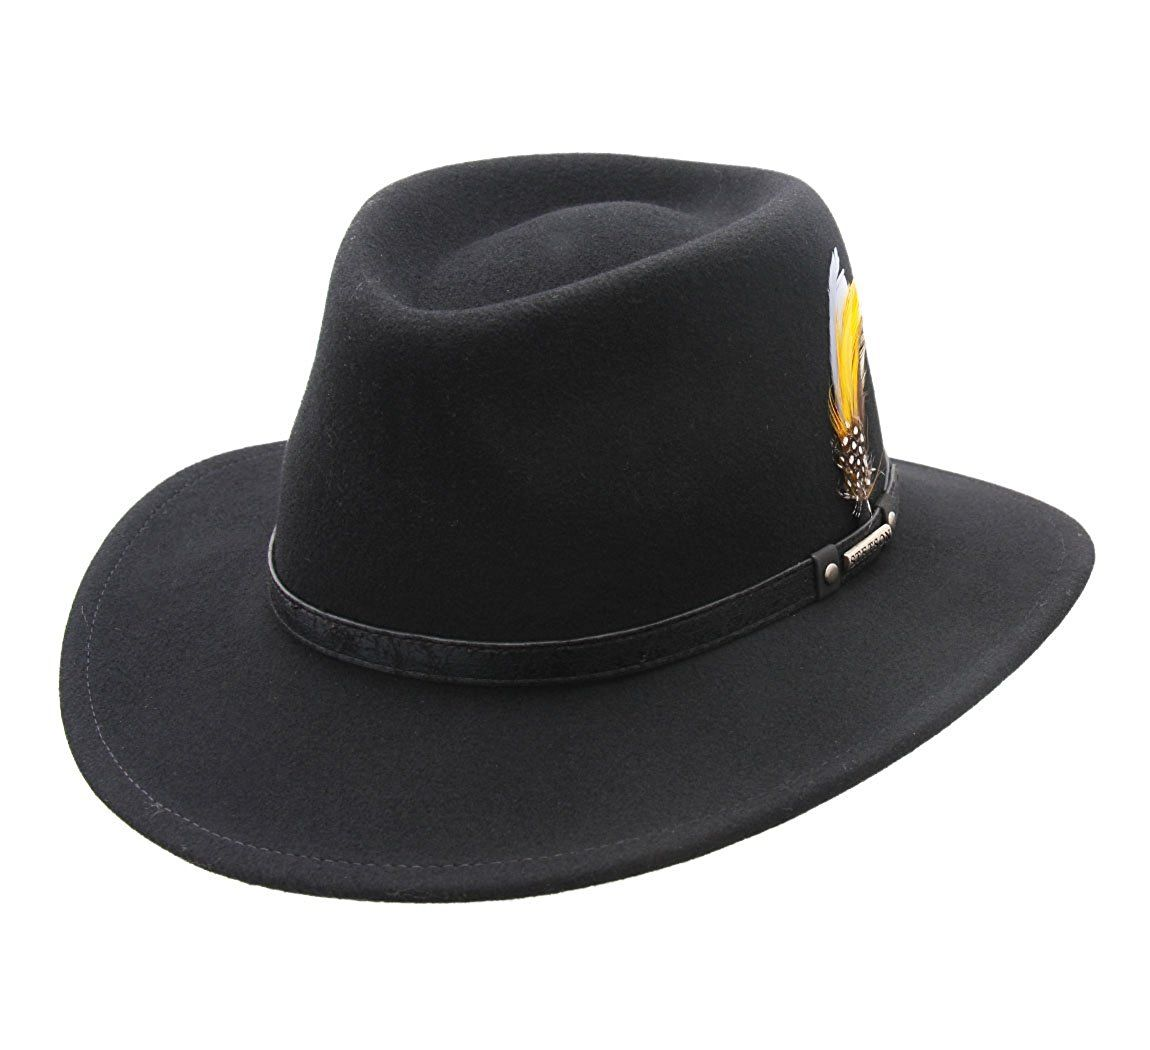 a7e1212315c90a Stetson Men's Biscoe Wool Felt Fedora Hat at Amazon Men's Clothing store: